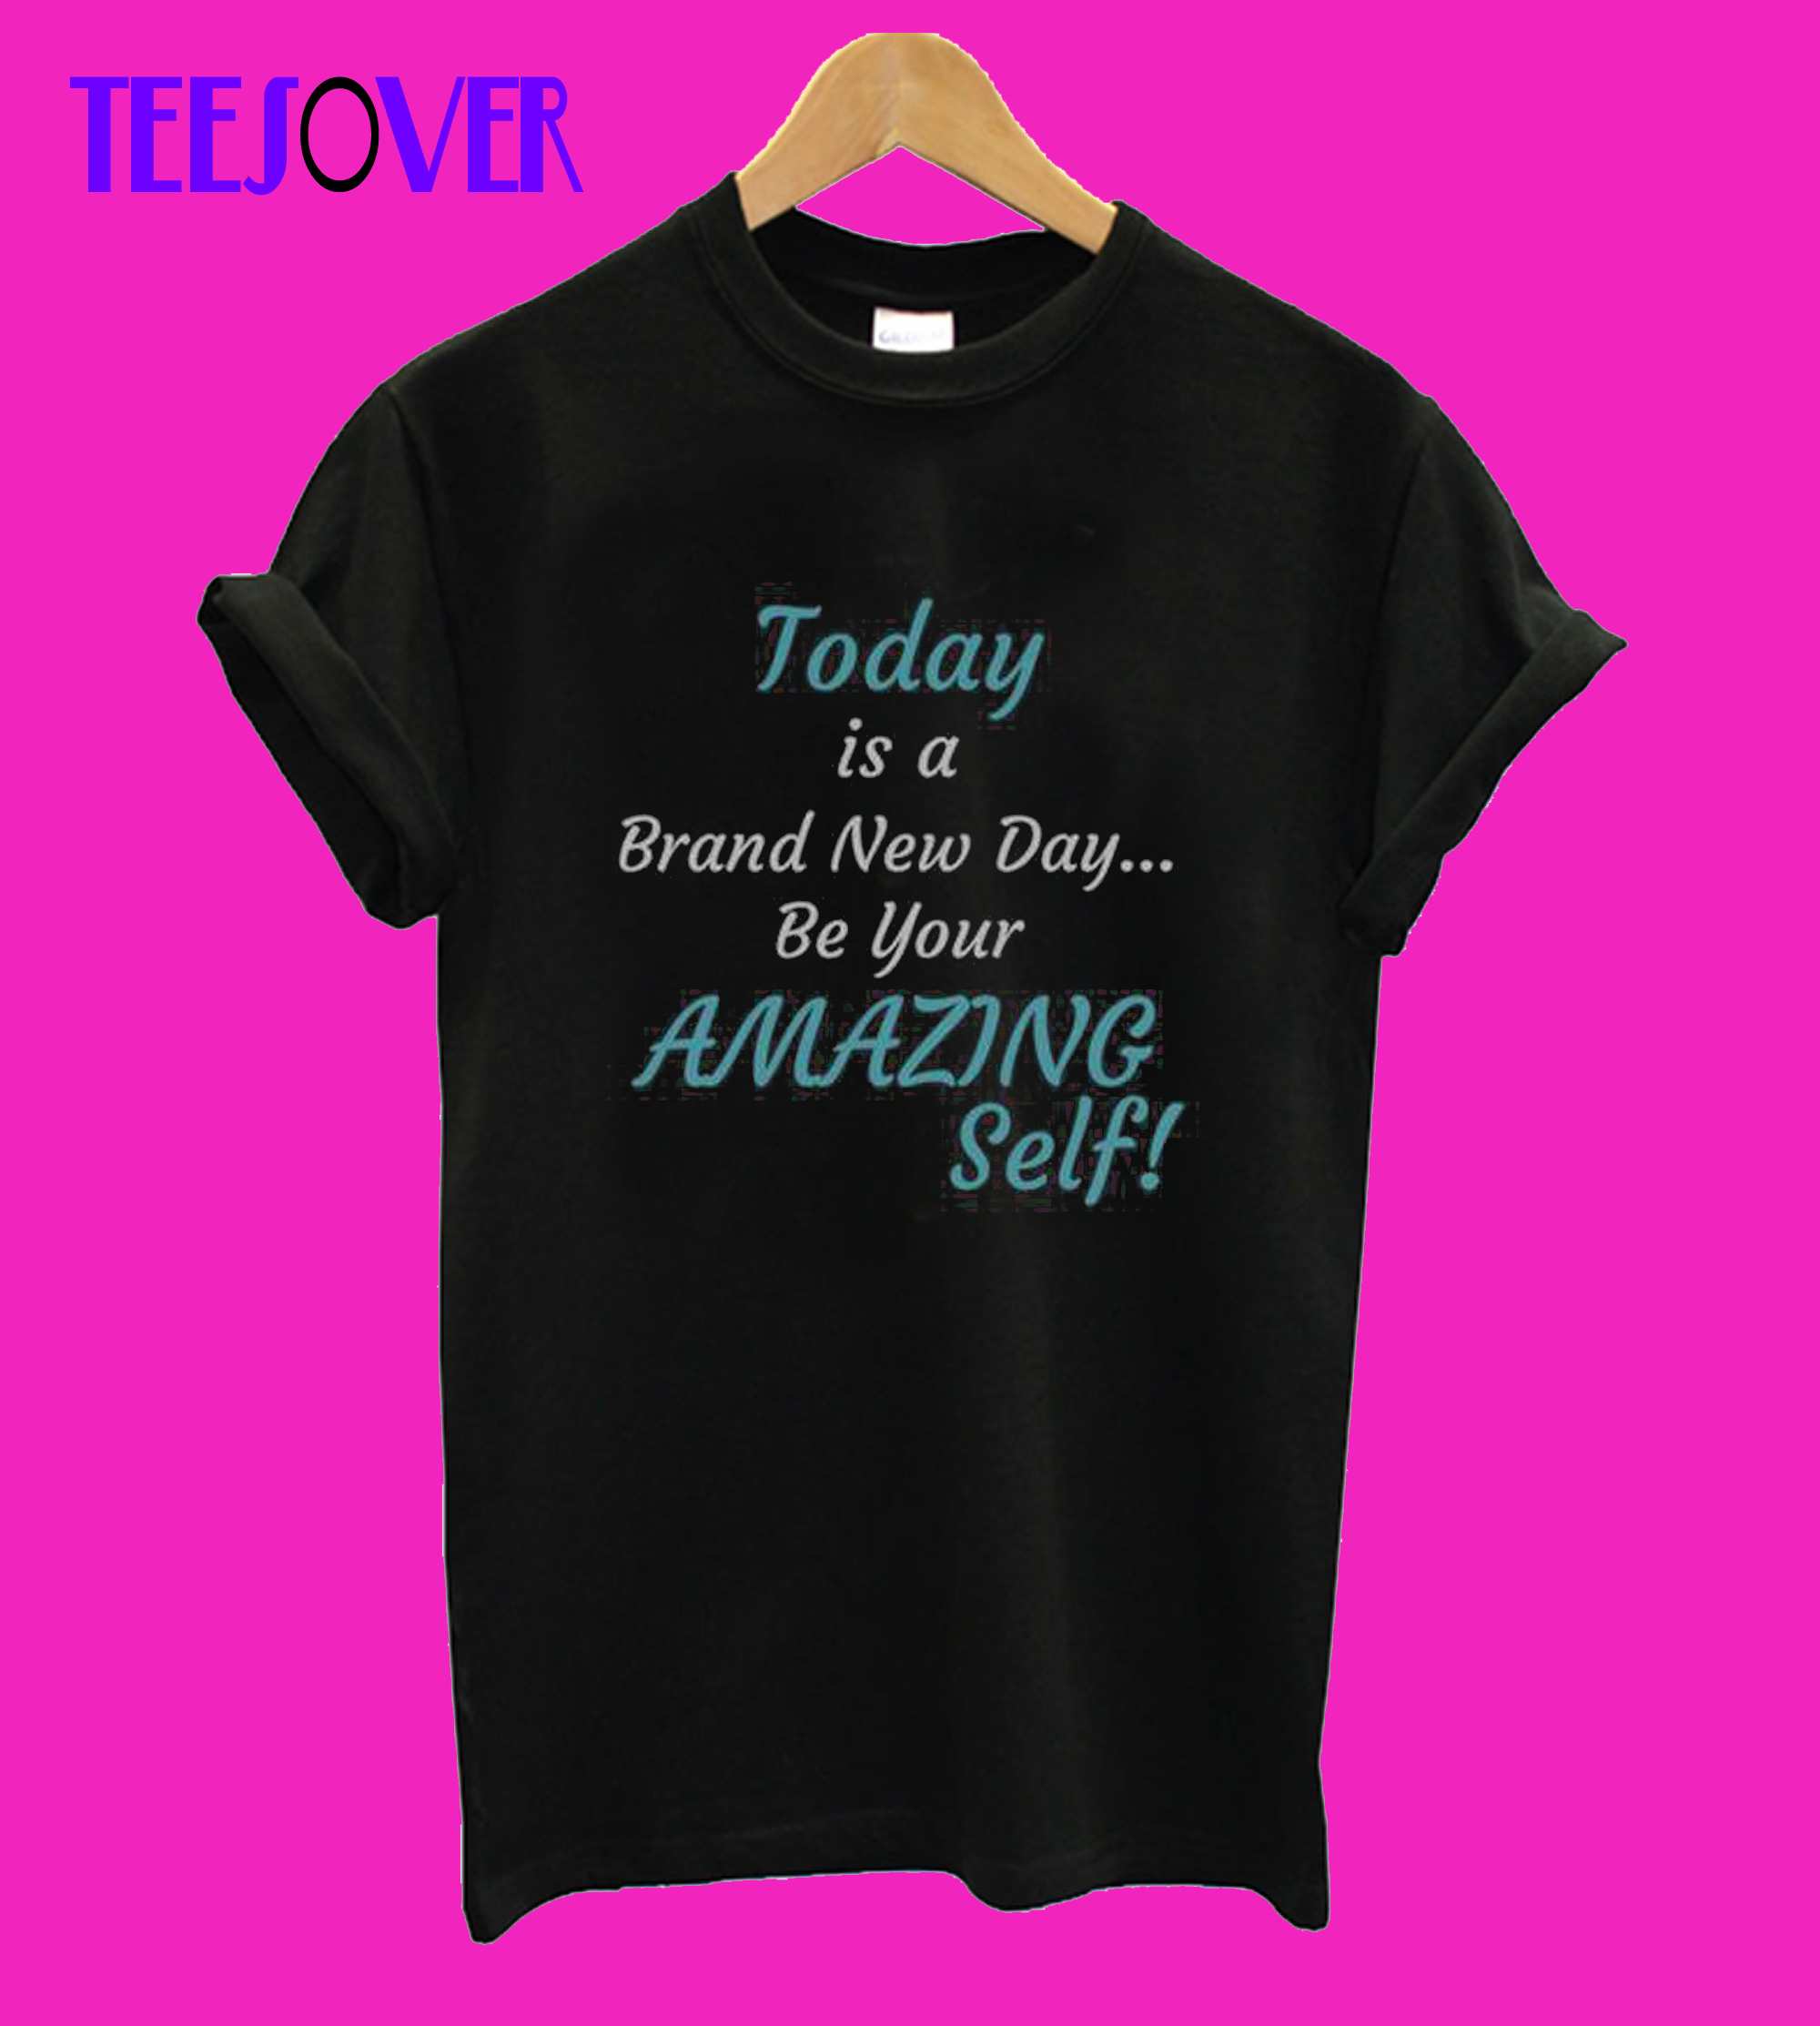 Today is a New Day Inspirational Short-Sleeve Unisex T-Shirt